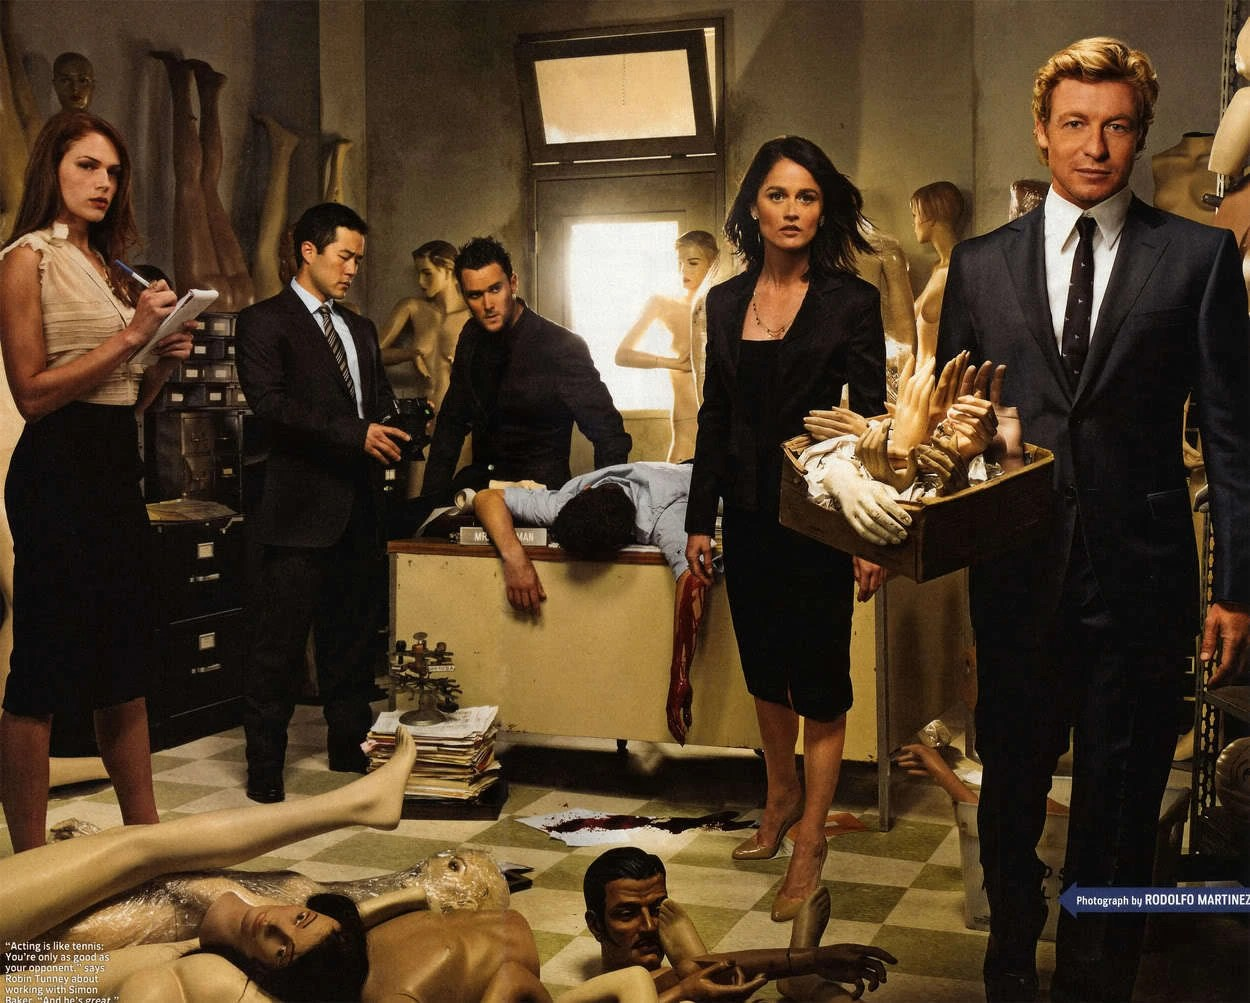 https://i2.wp.com/static4.wikia.nocookie.net/__cb20111021171121/thementalist/de/images/3/31/Alltogether.jpg